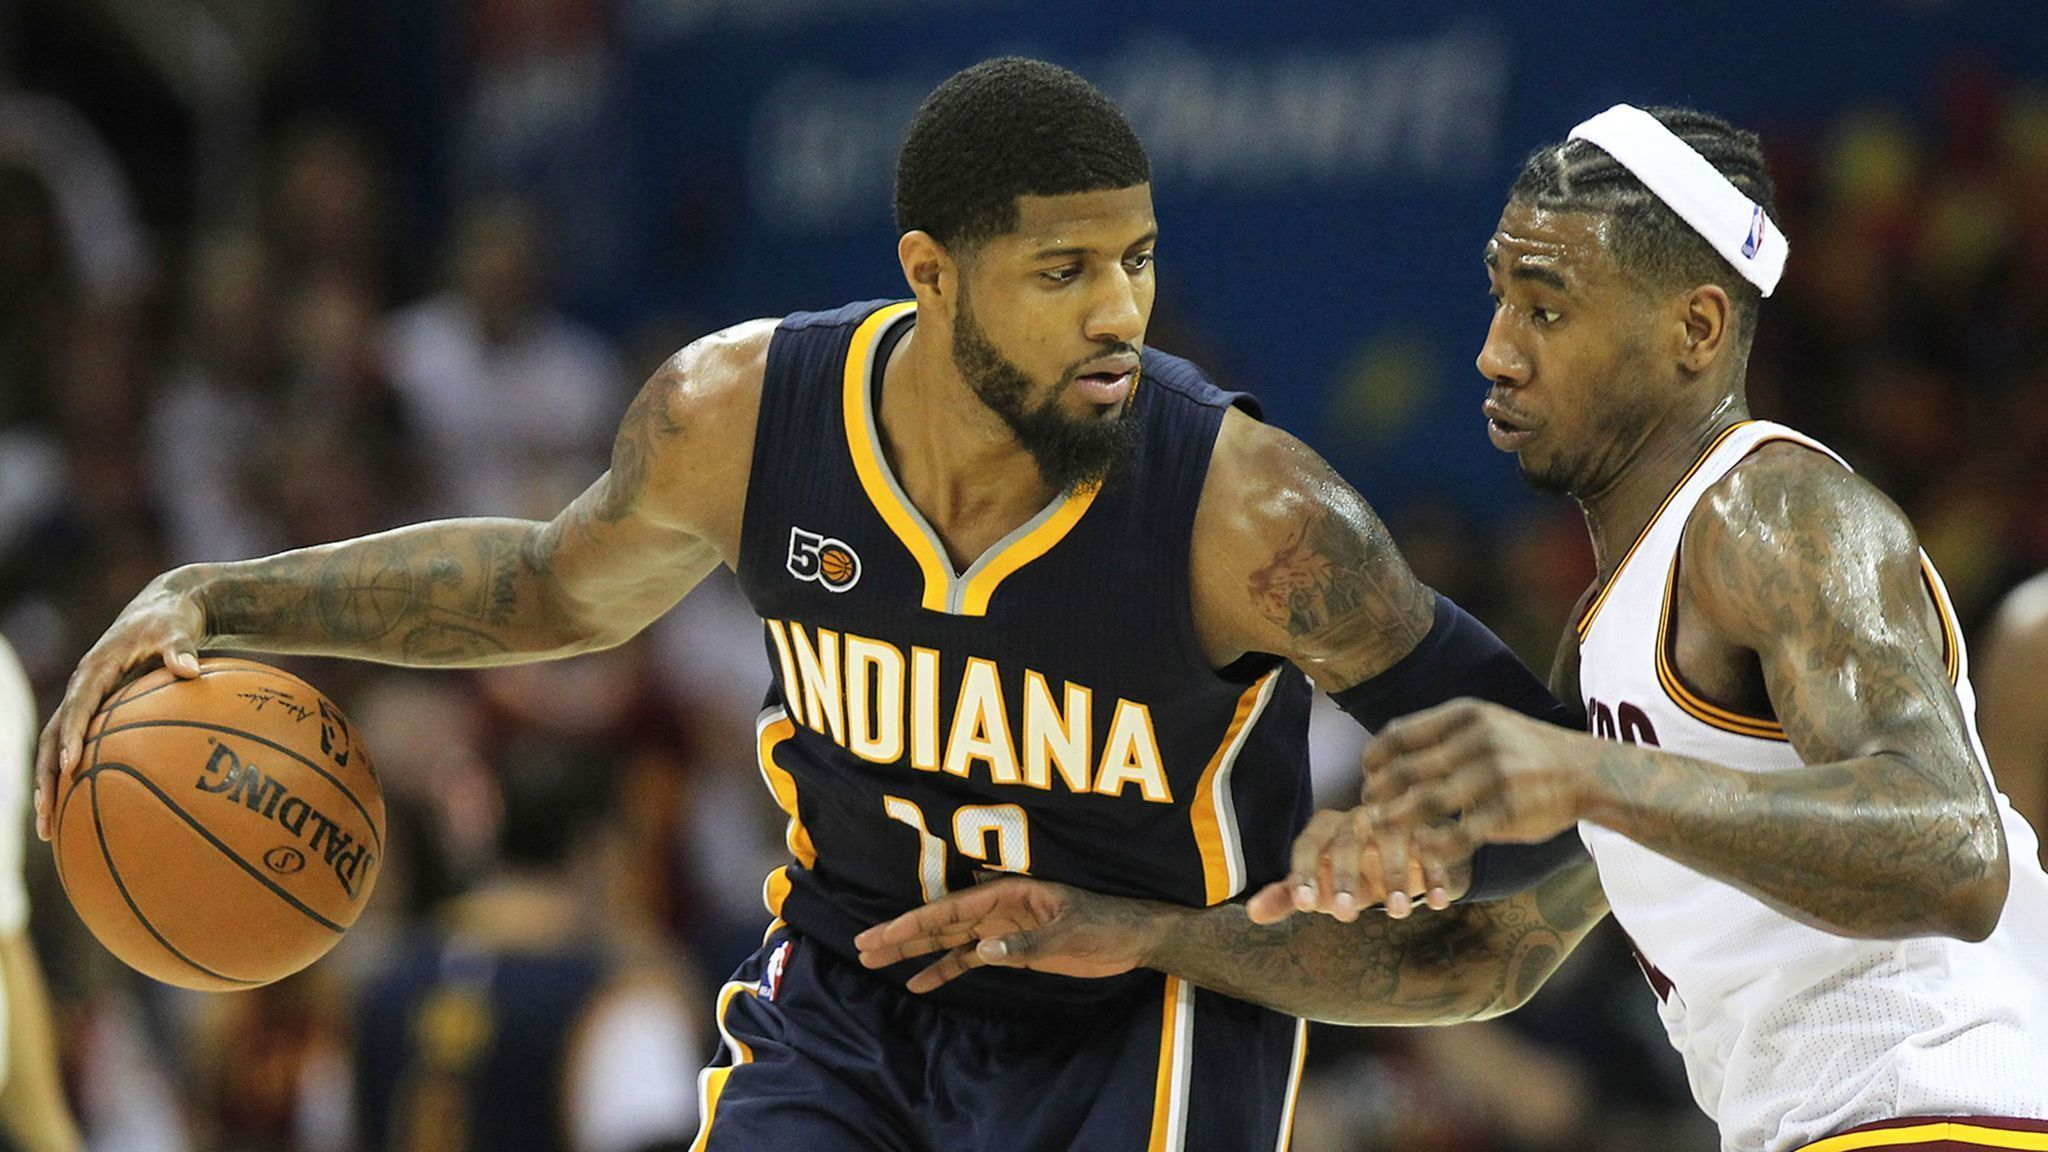 nydailynews.com Indianapolis retailer gives away its Paul George  merchandise after report he wants to leave Pacers in 2018 e36e55e30d3b